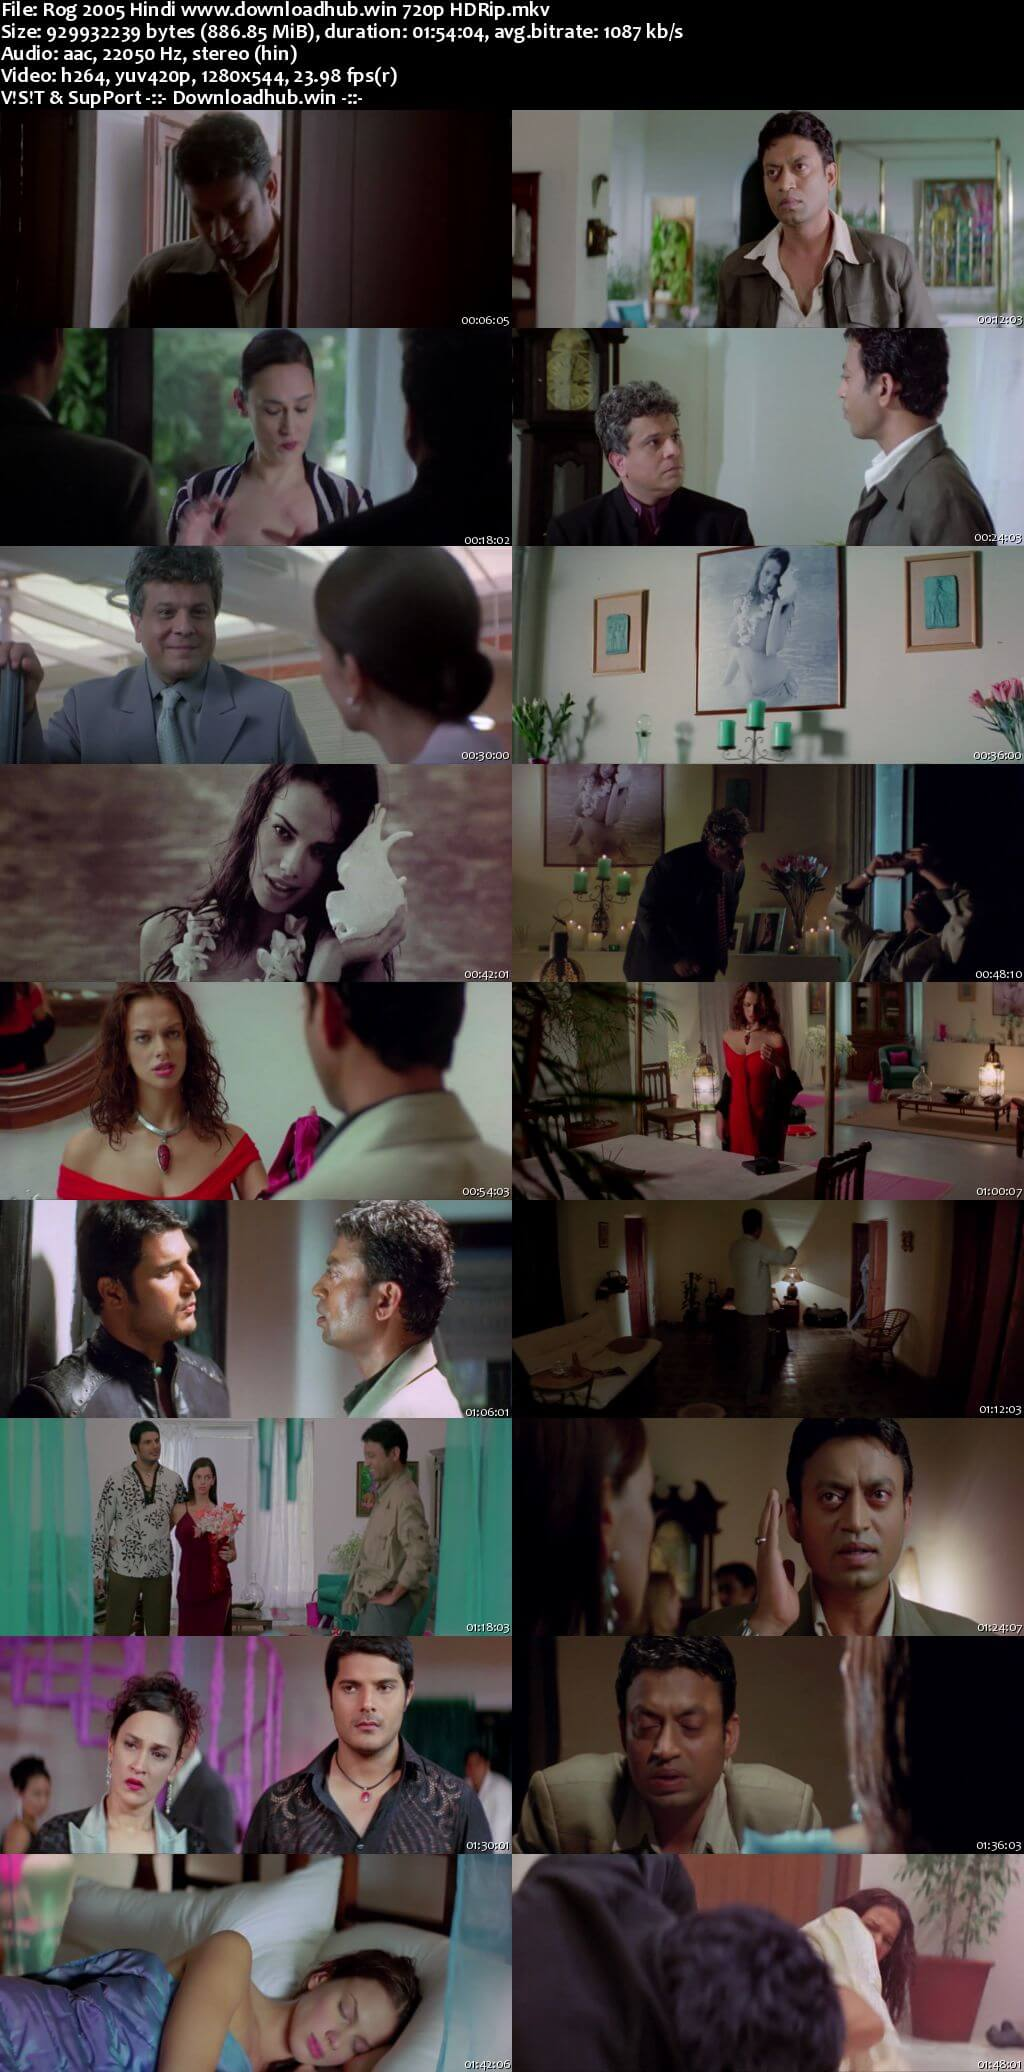 Rog 2005 Hindi 720p HDRip x264